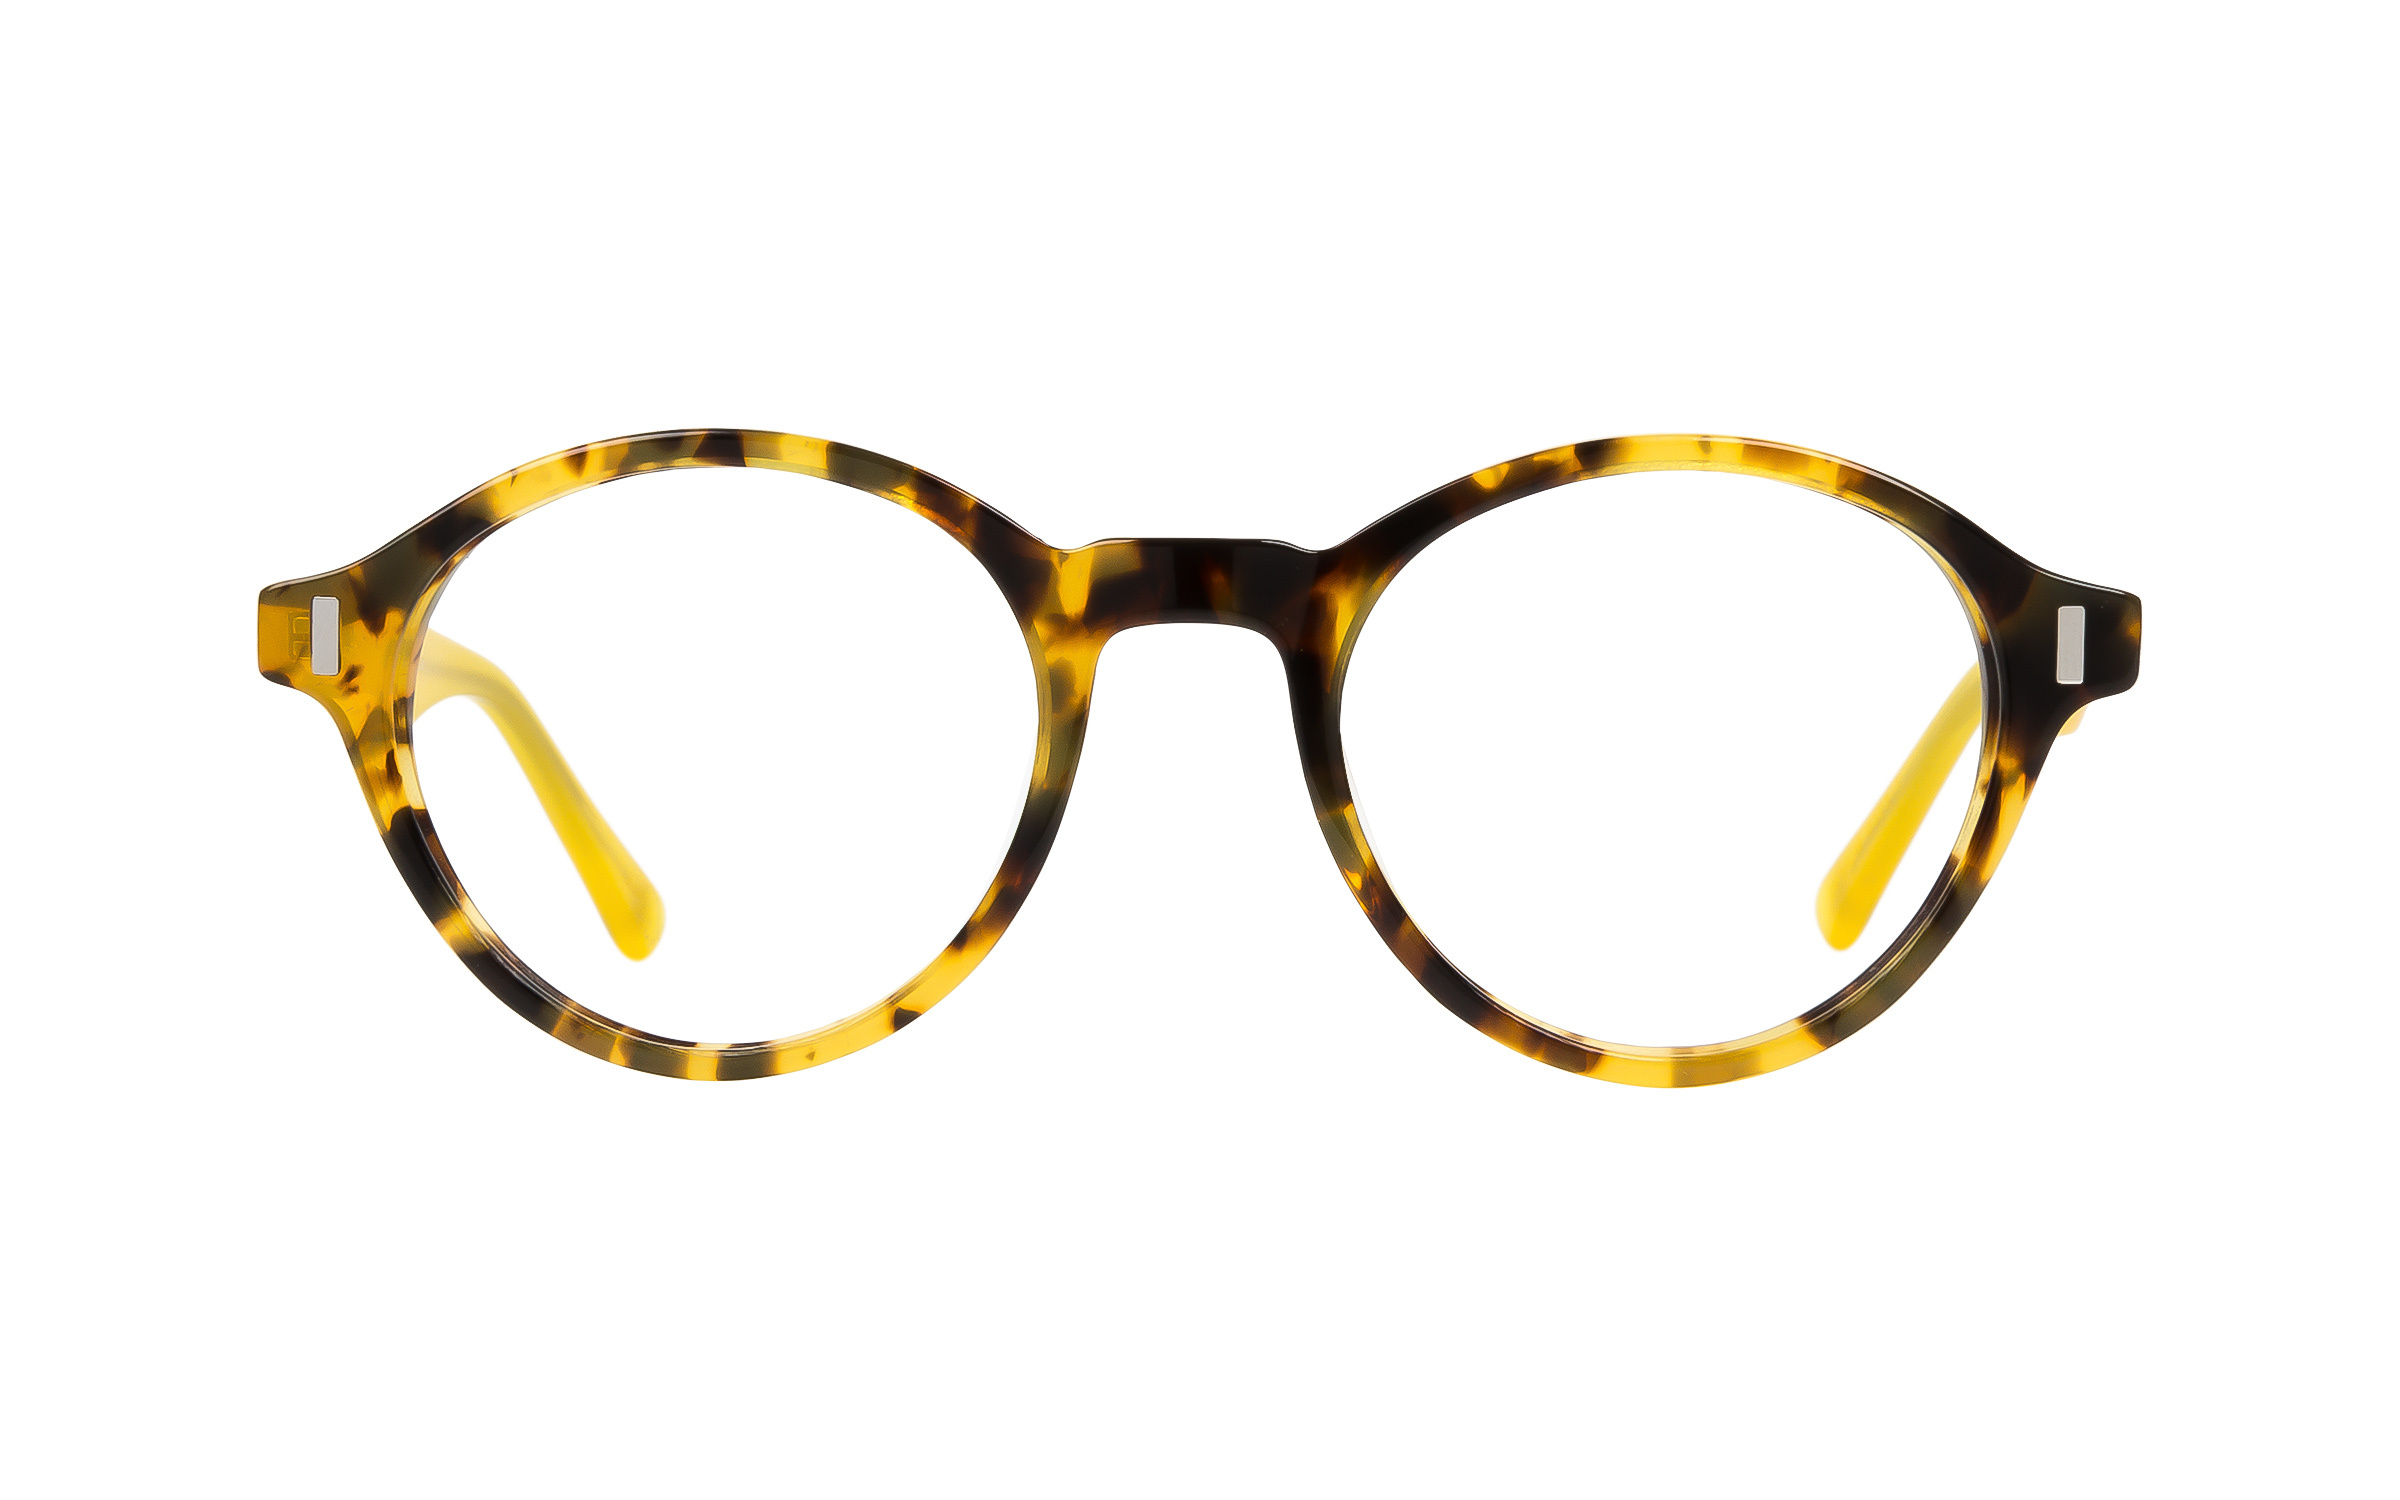 Vince Camuto VG110 TYYL Tortoise Yellow